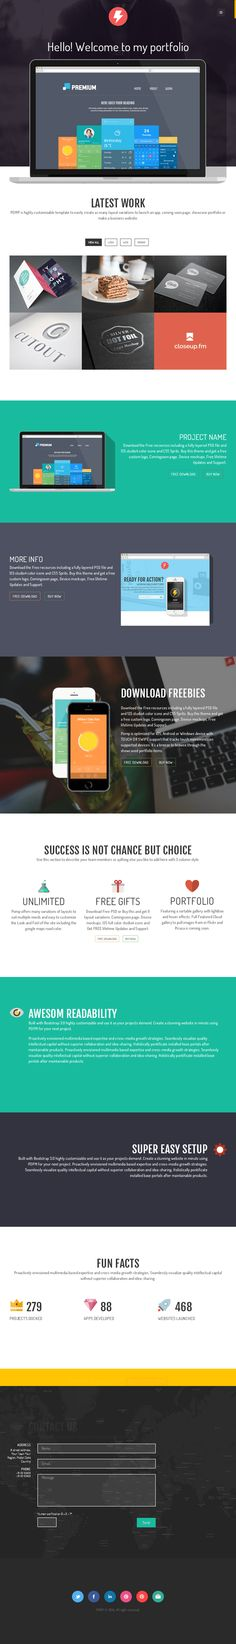 Pomp Landing Page on Web Design Served